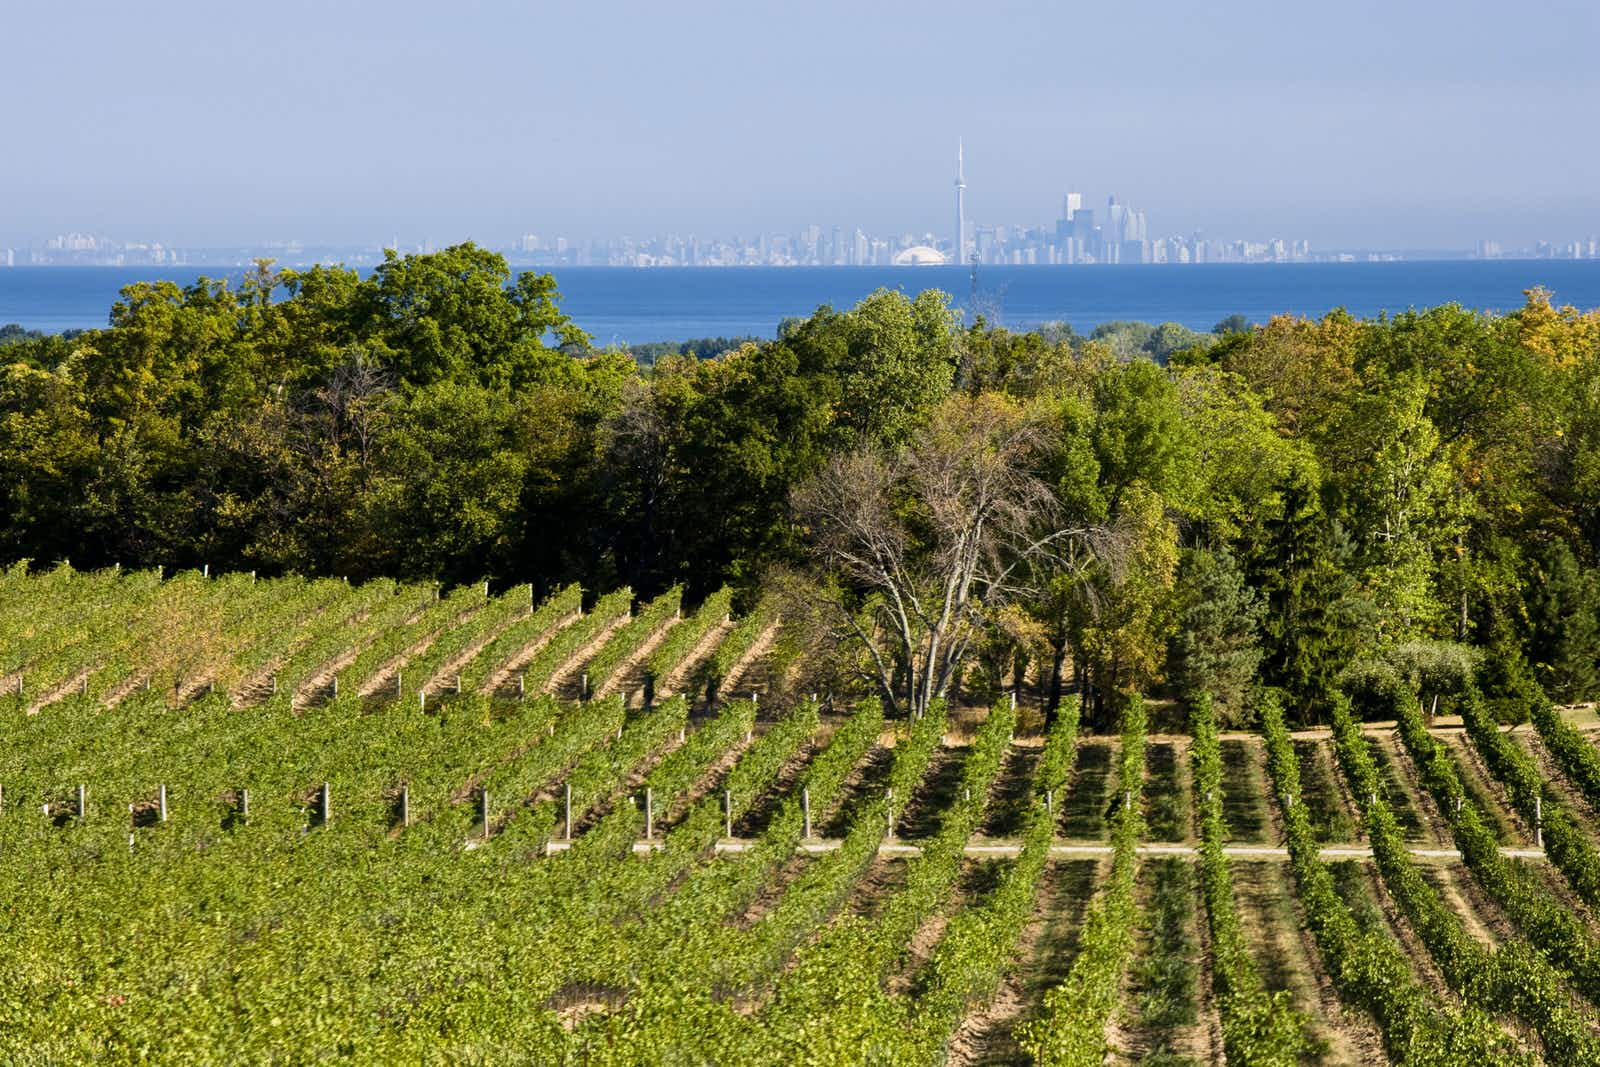 A vinyard with rows of grape vines is in the foreground, with a lake view behind. Far in the distance, on the other side of the lake, is the skyline of Toronto.